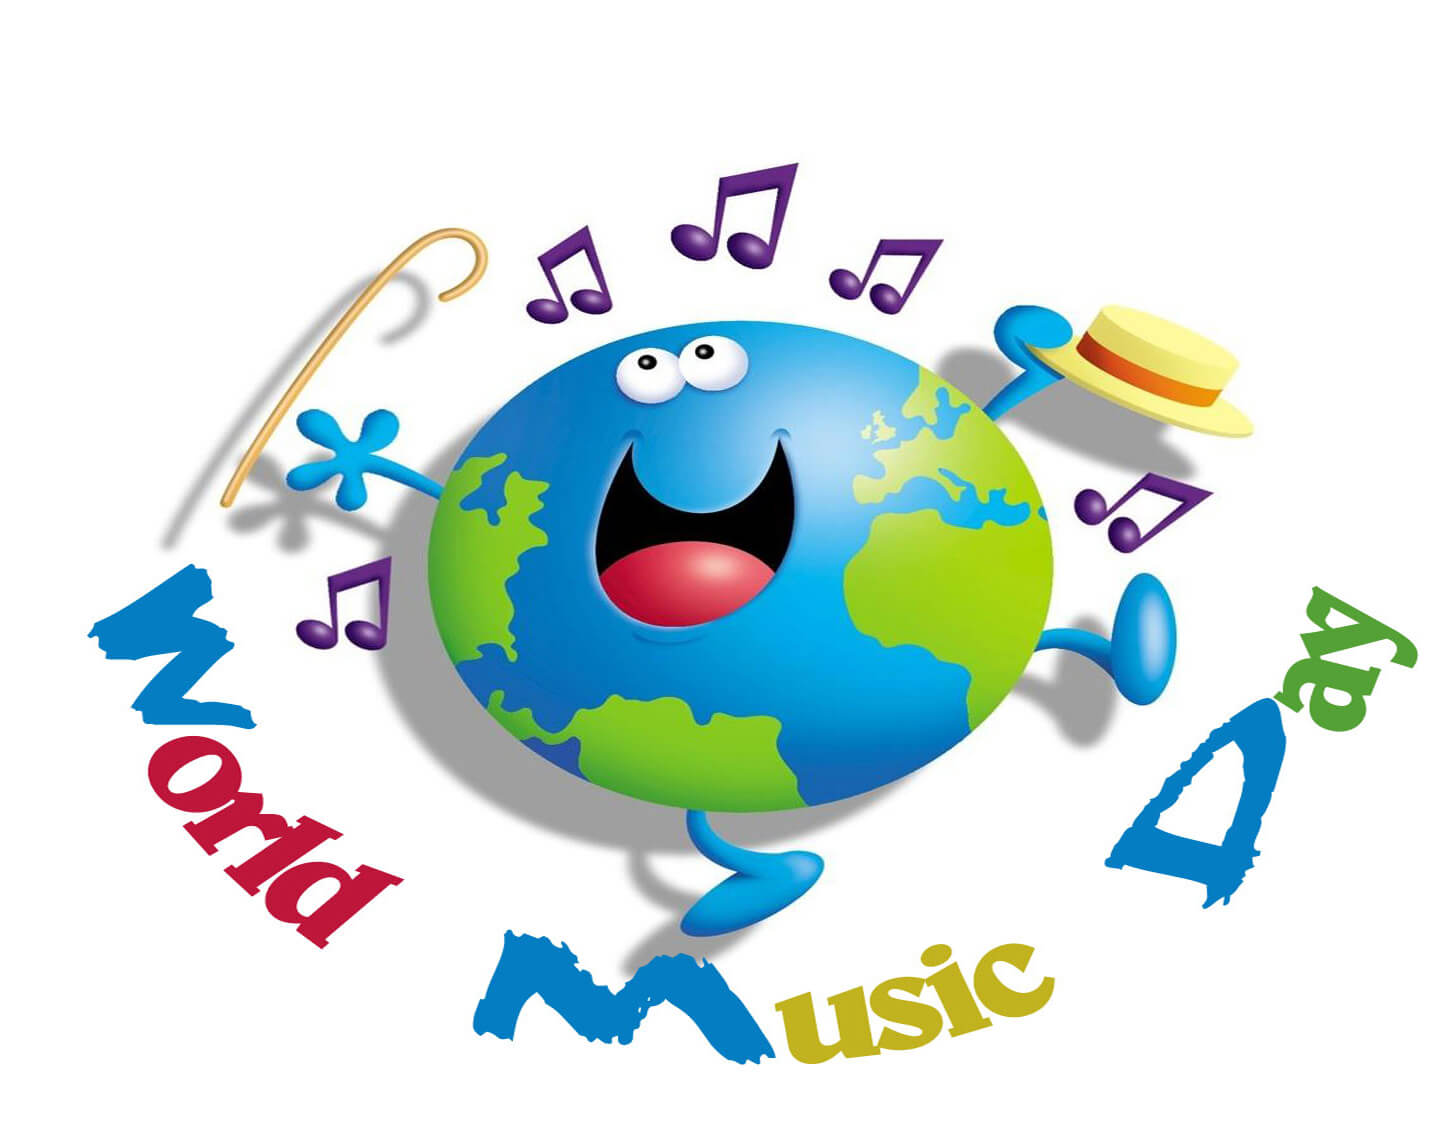 world music day dance hd wallpaper